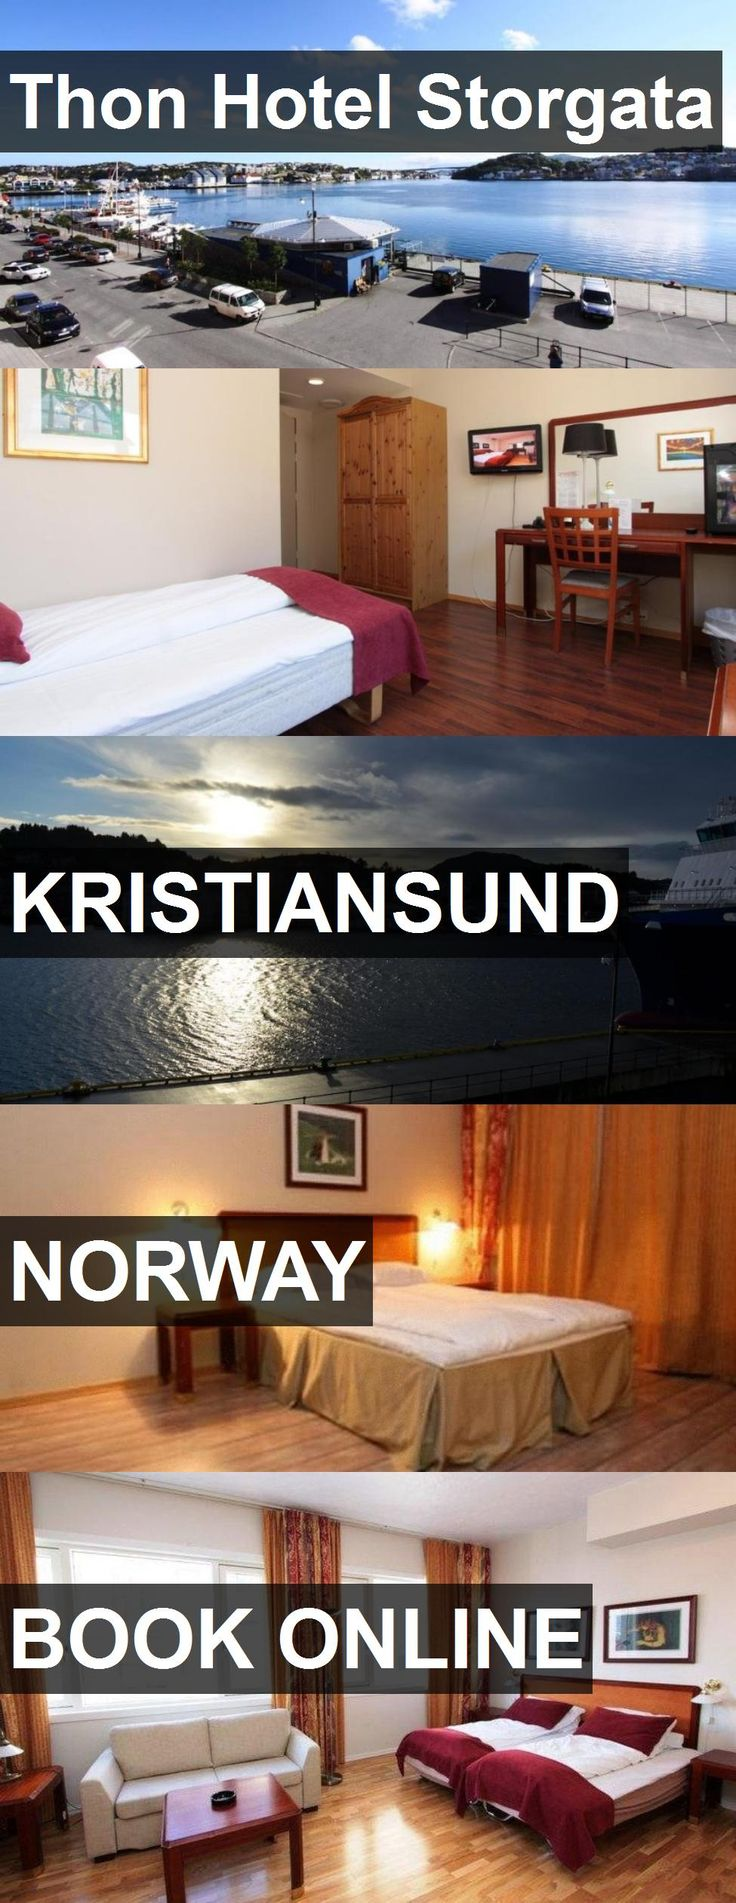 Thon Hotel Storgata in Kristiansund, Norway. For more information, photos, reviews and best prices please follow the link. #Norway #Kristiansund #travel #vacation #hotel